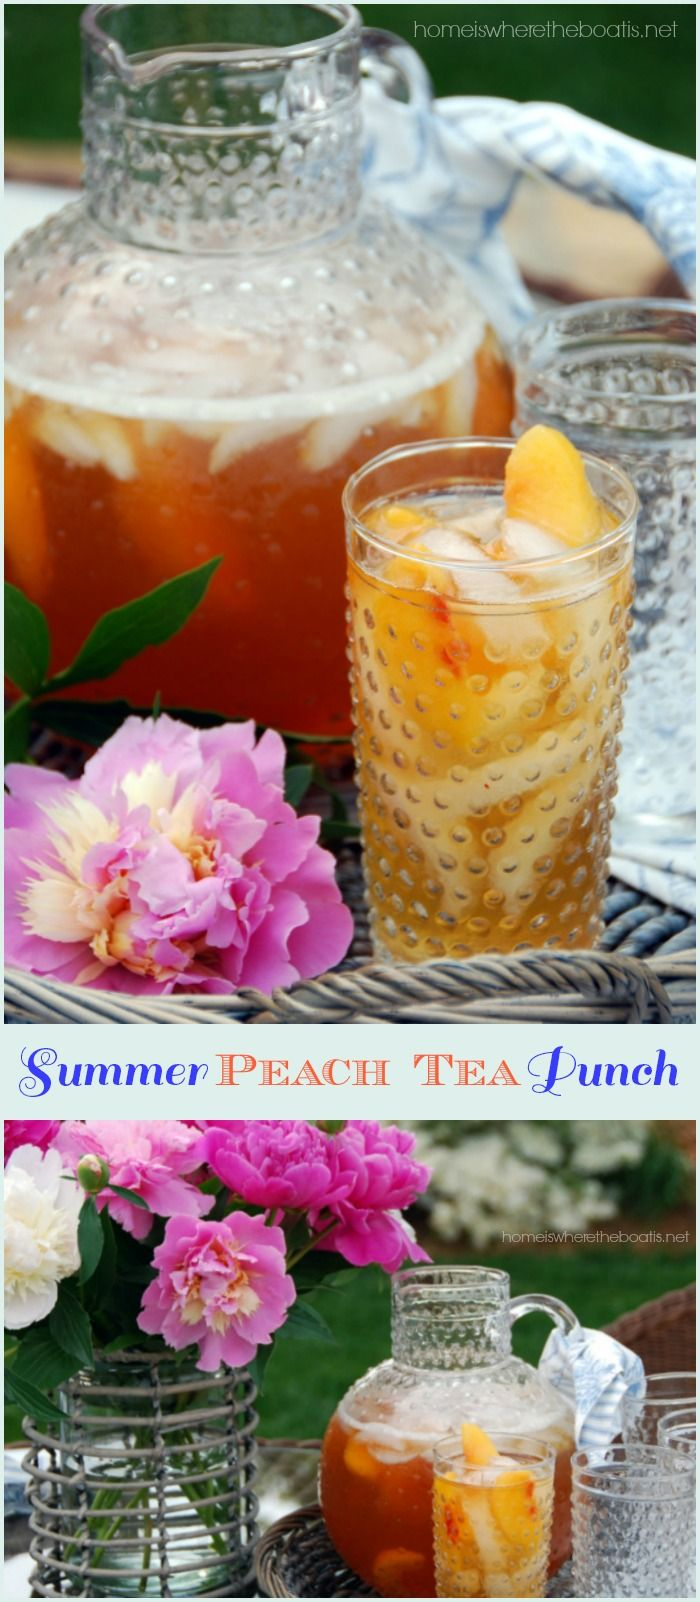 Summer Peach Tea Punch